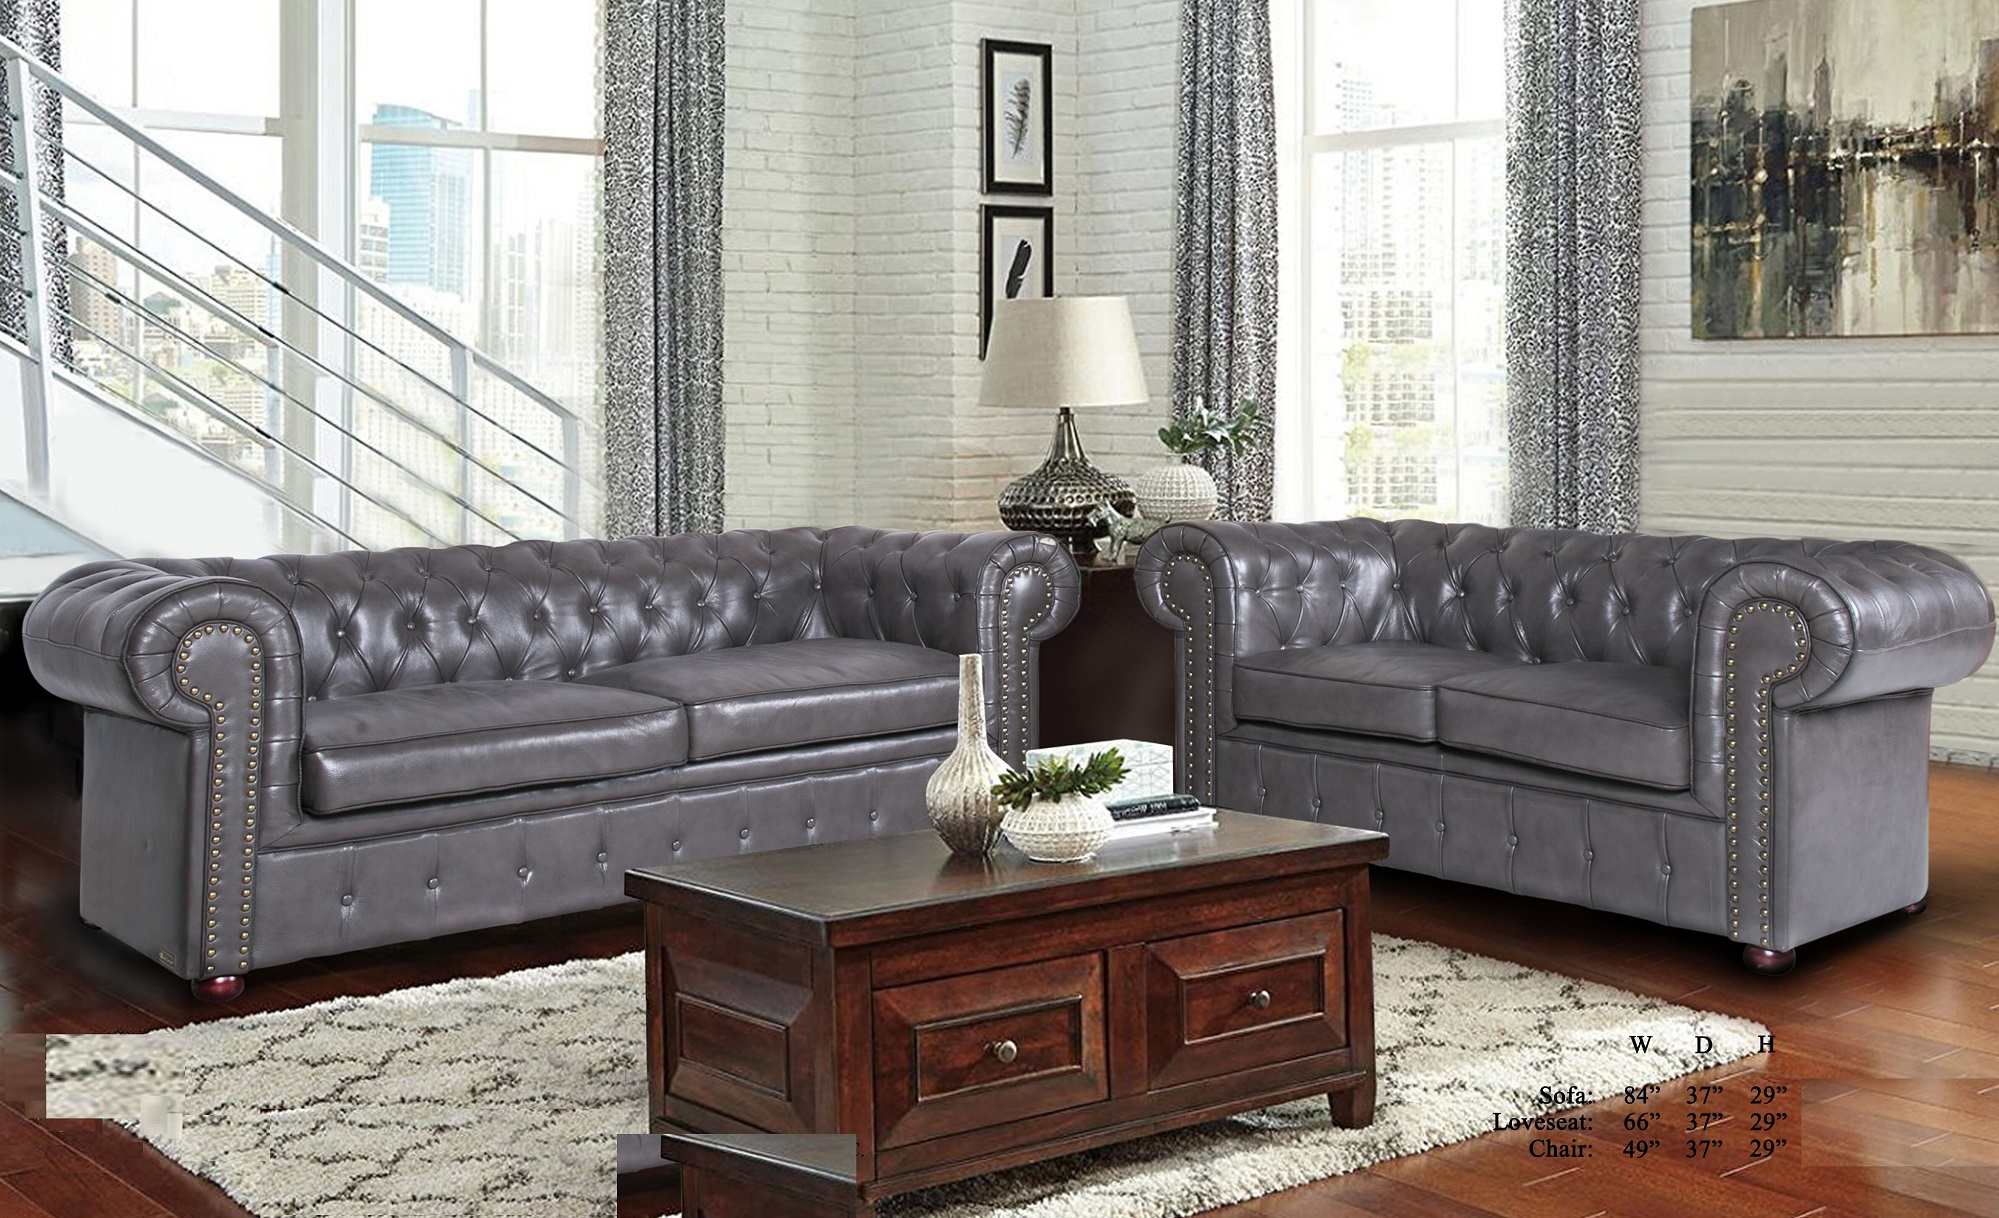 Formal Luxurious Living Room Furniture Gray 2Pc Sofa Set Within Sofa Chairs For Living Room (View 4 of 15)